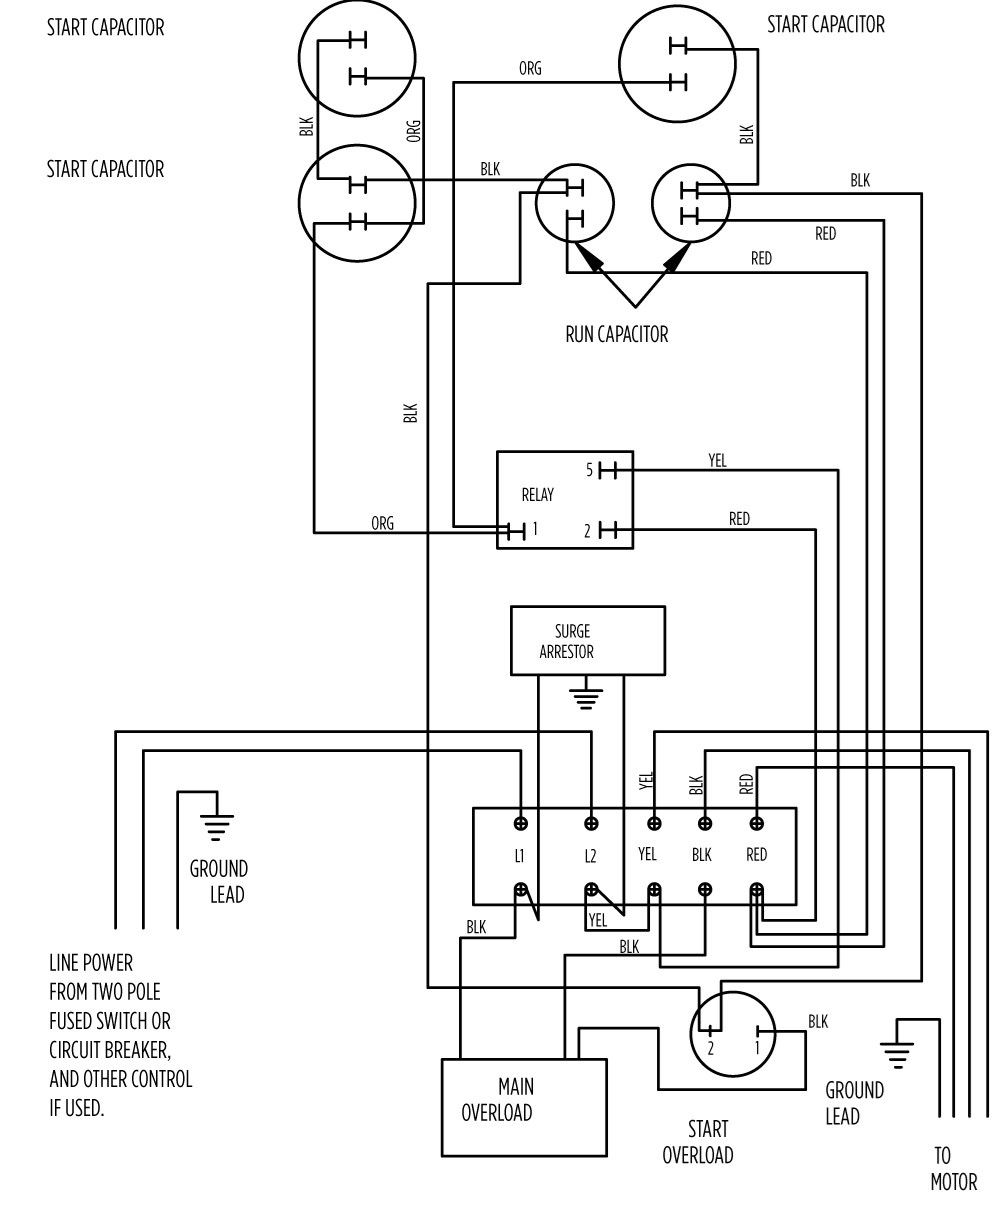 Wiring Diagram Motor Control Library Stepper Controller Circuit And Instructions For Diagrams On 10 Hp Standard 282 202 9210 Or 9230